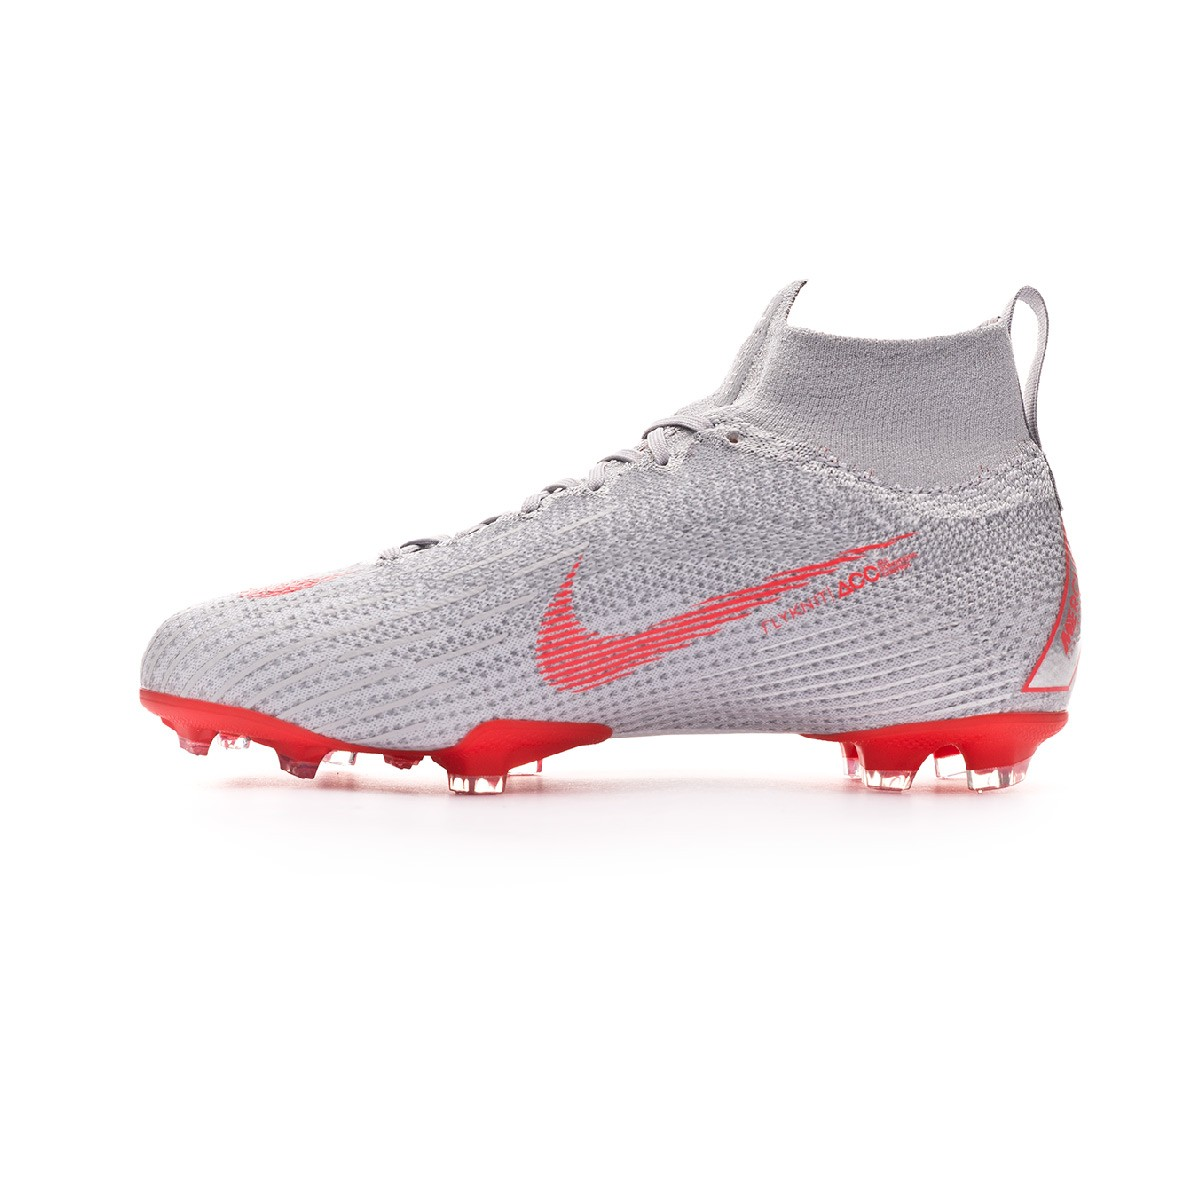 73b5a9974e Football Boots Nike Kids Mercurial Superfly VI Elite FG Wolf grey-Light  crimson-Pure platinum - Football store Fútbol Emotion